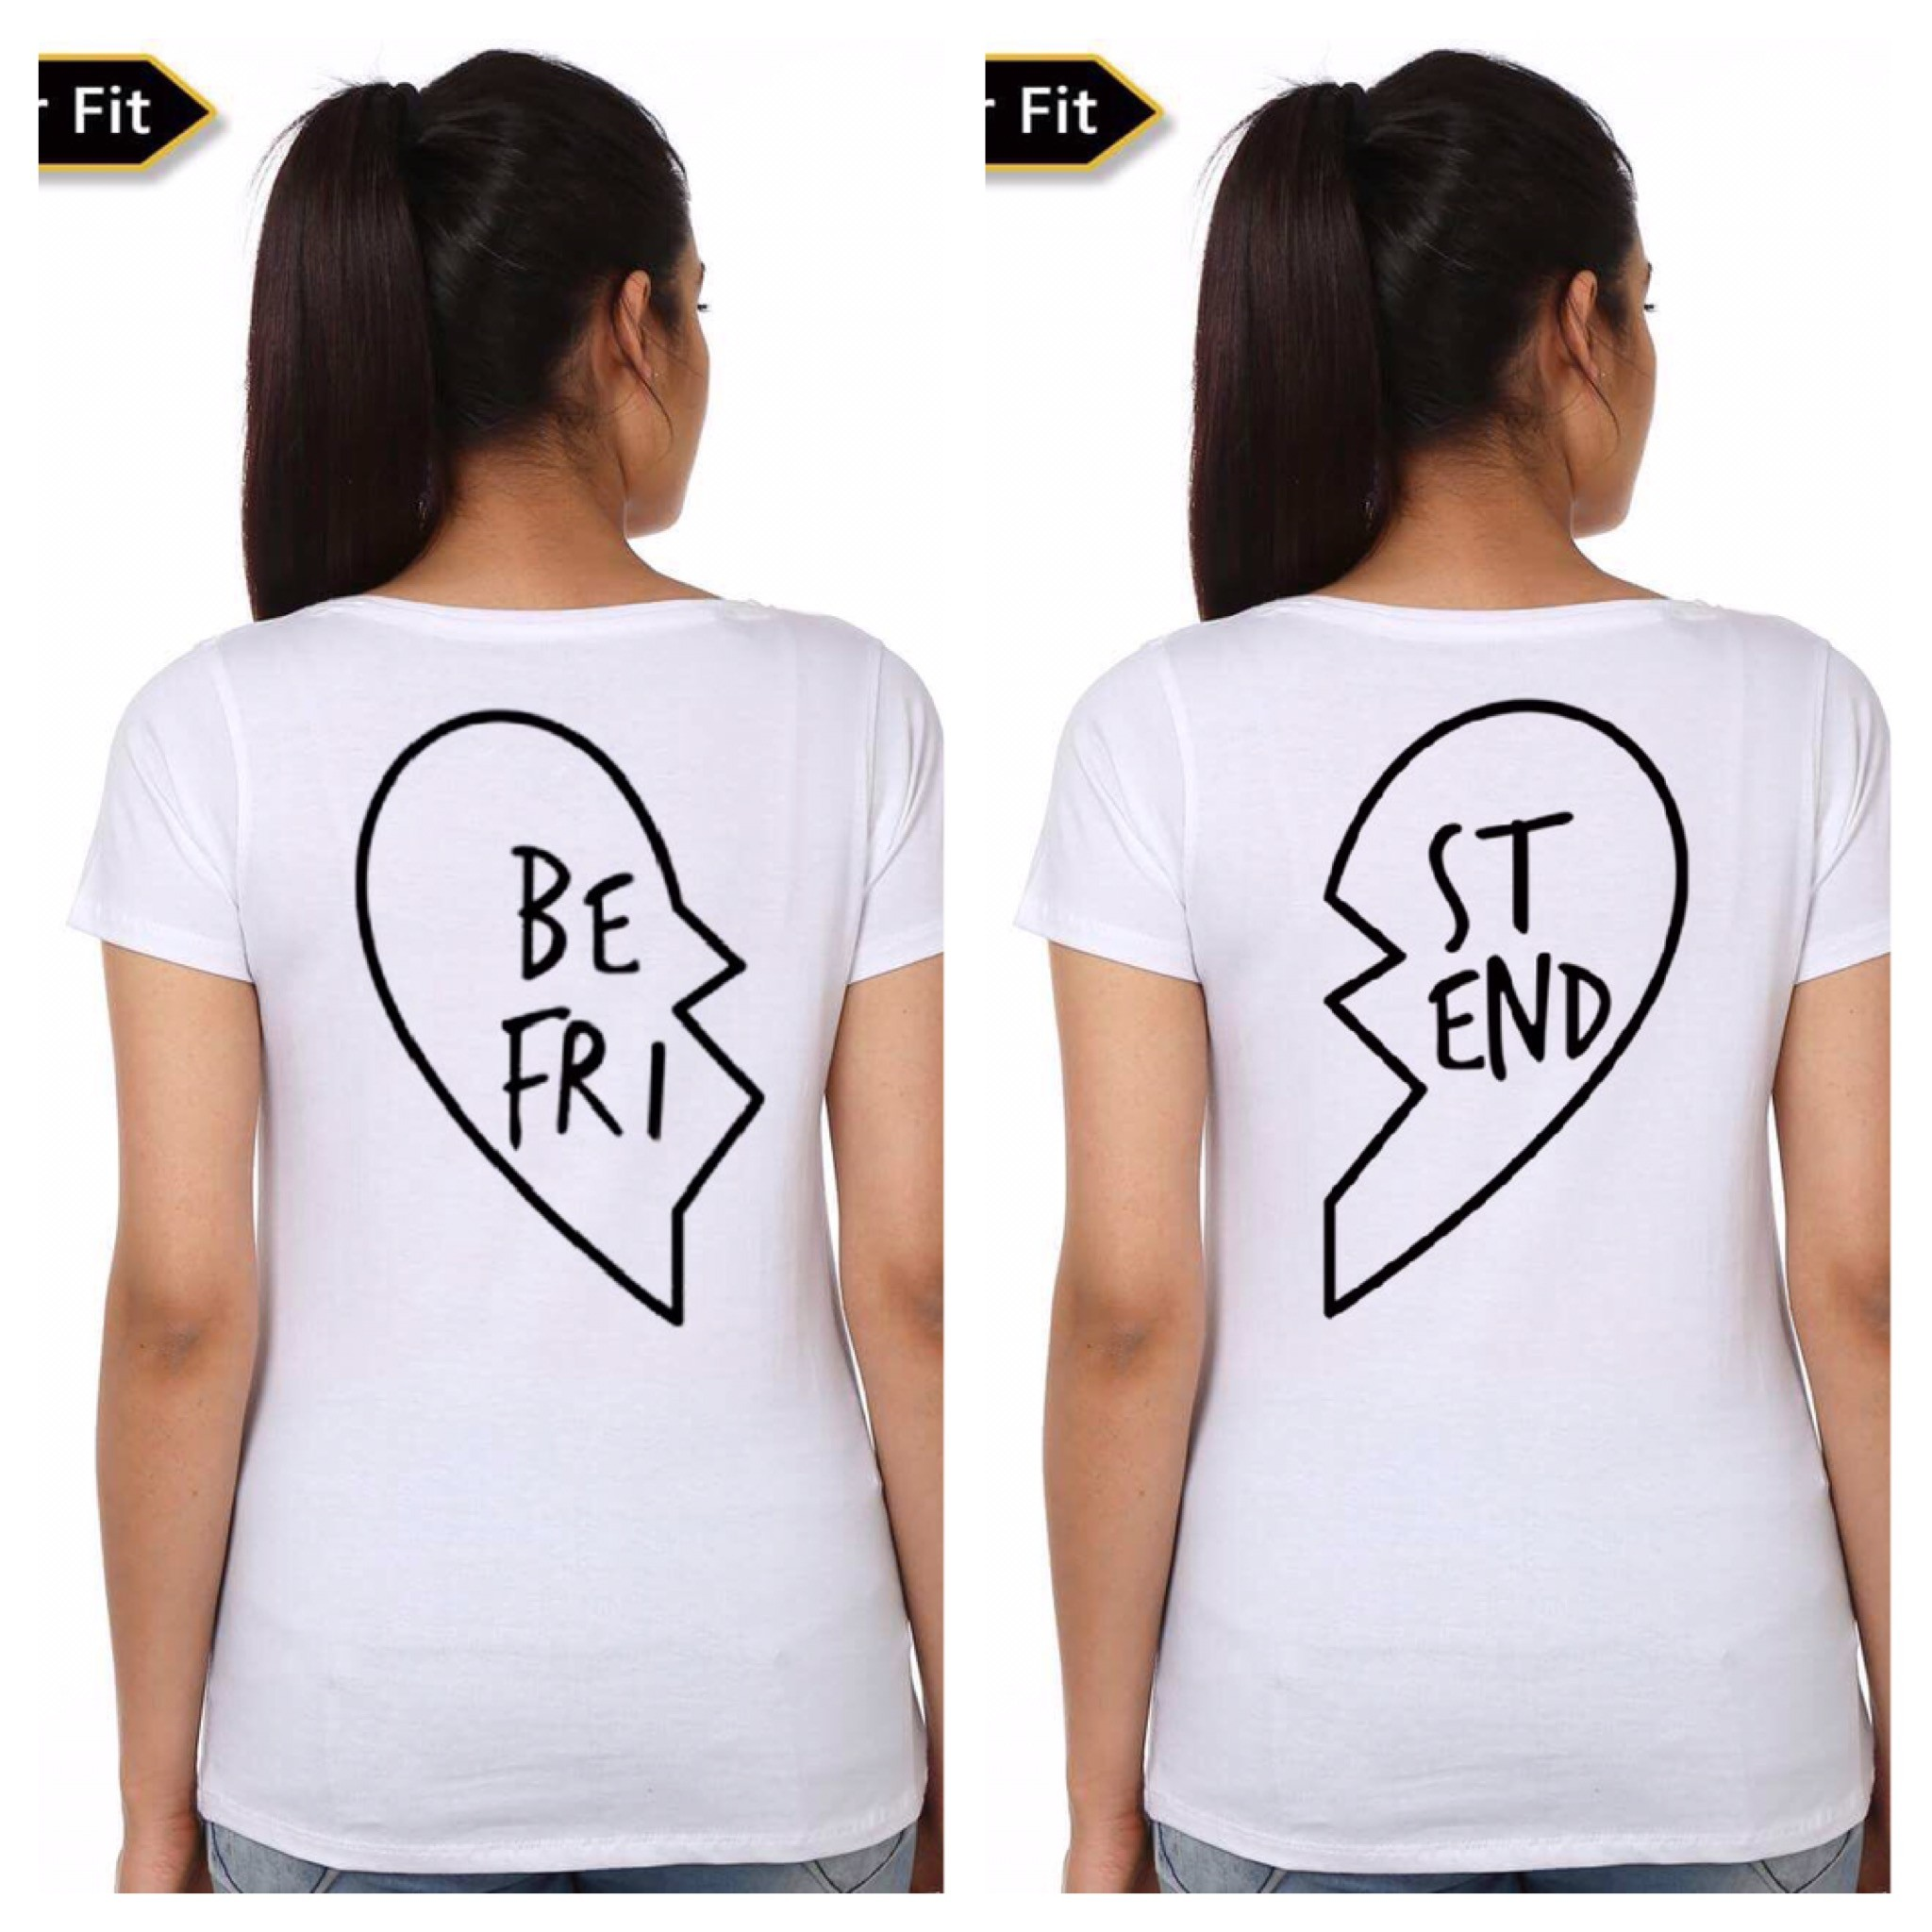 30f040ef6 Best Friends Couple T-Shirt   Swag Shirts